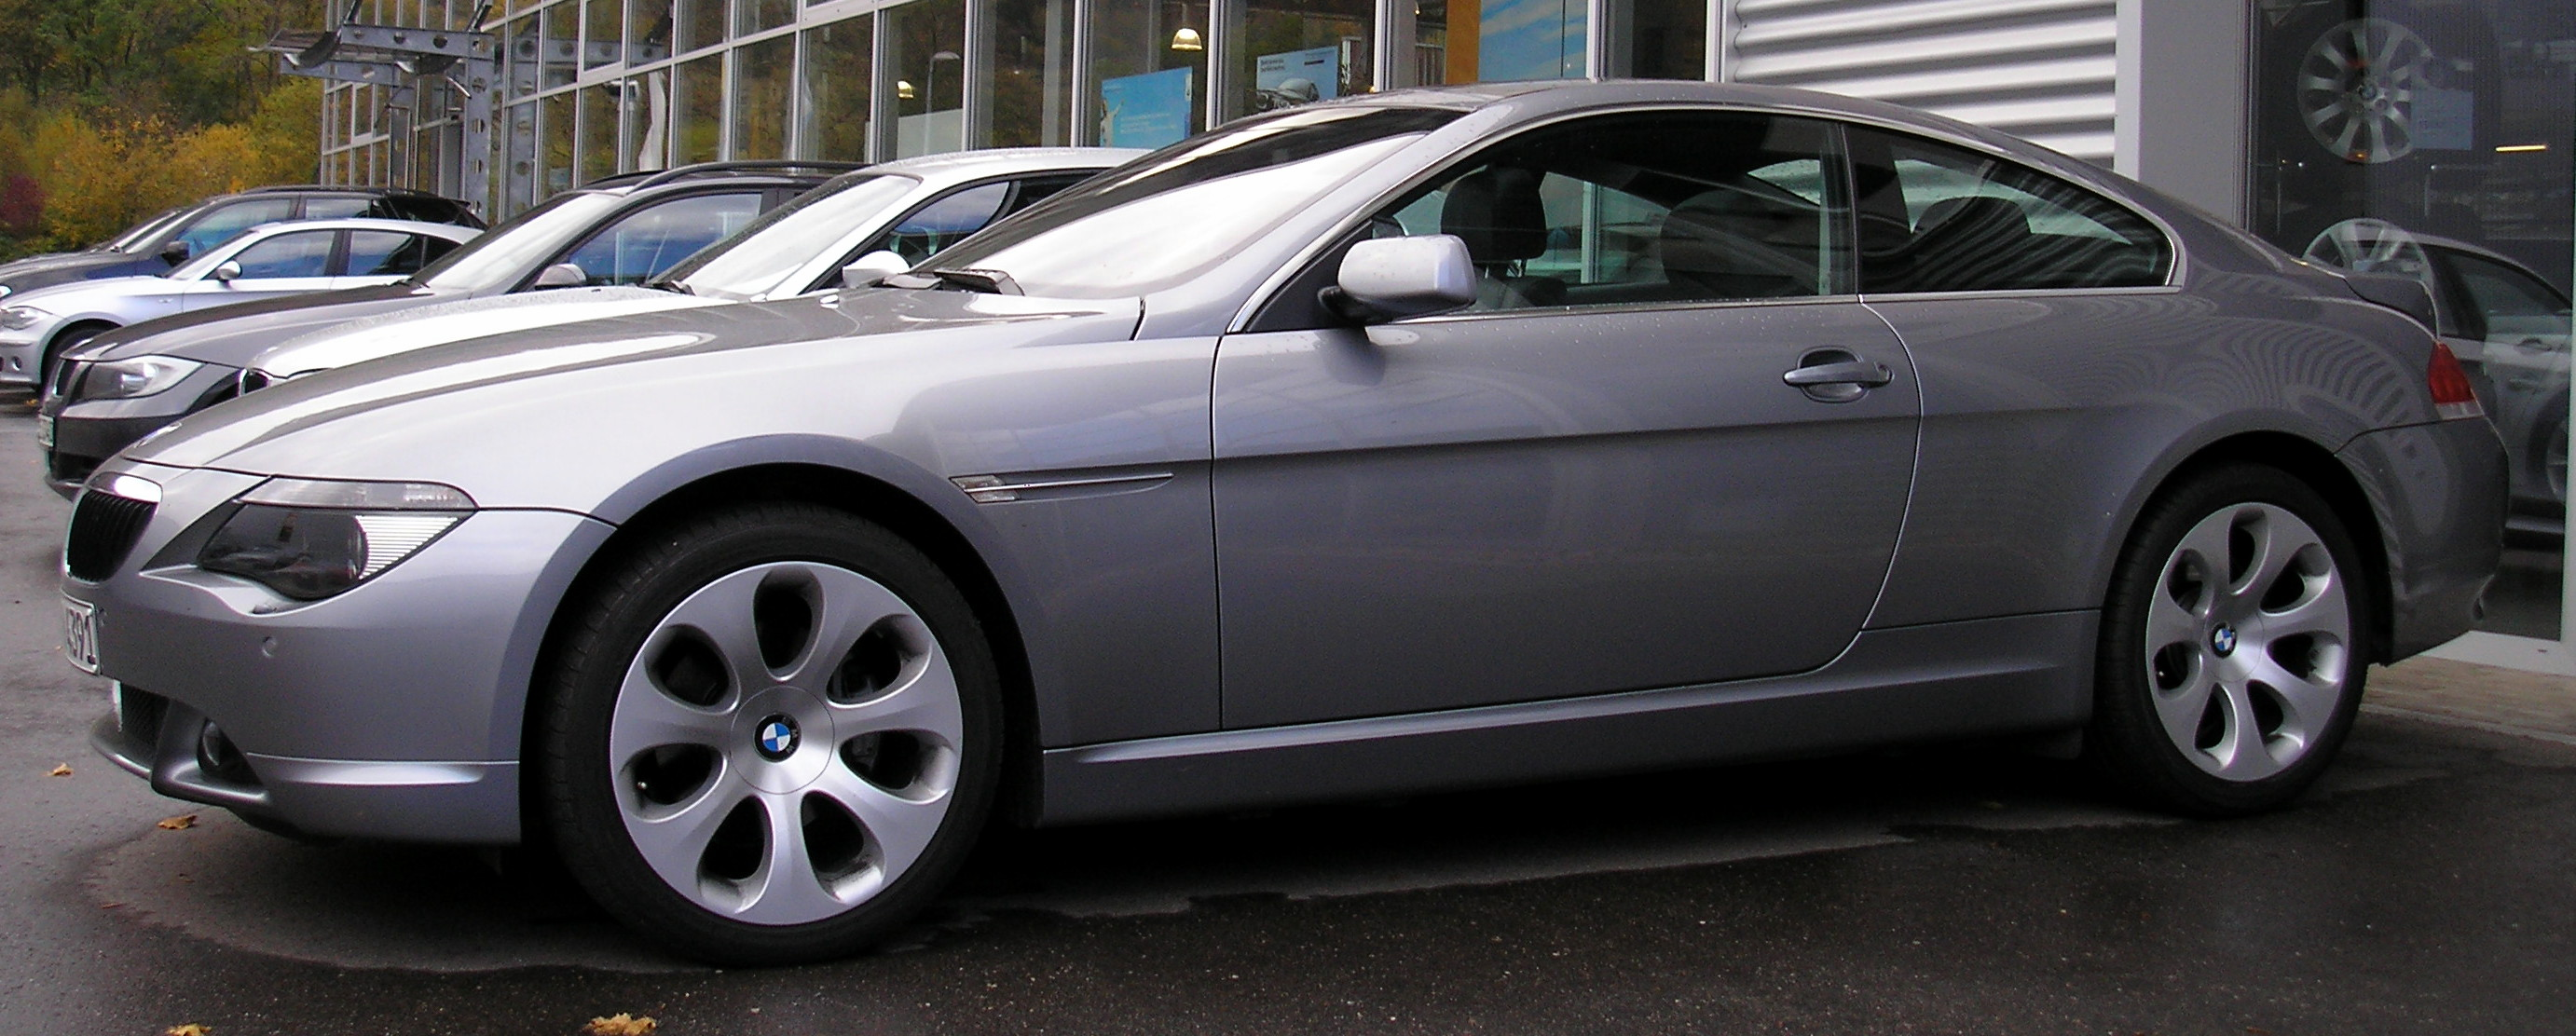 2 Door Convertible >> File:BMW 645Ci.JPG - Wikimedia Commons